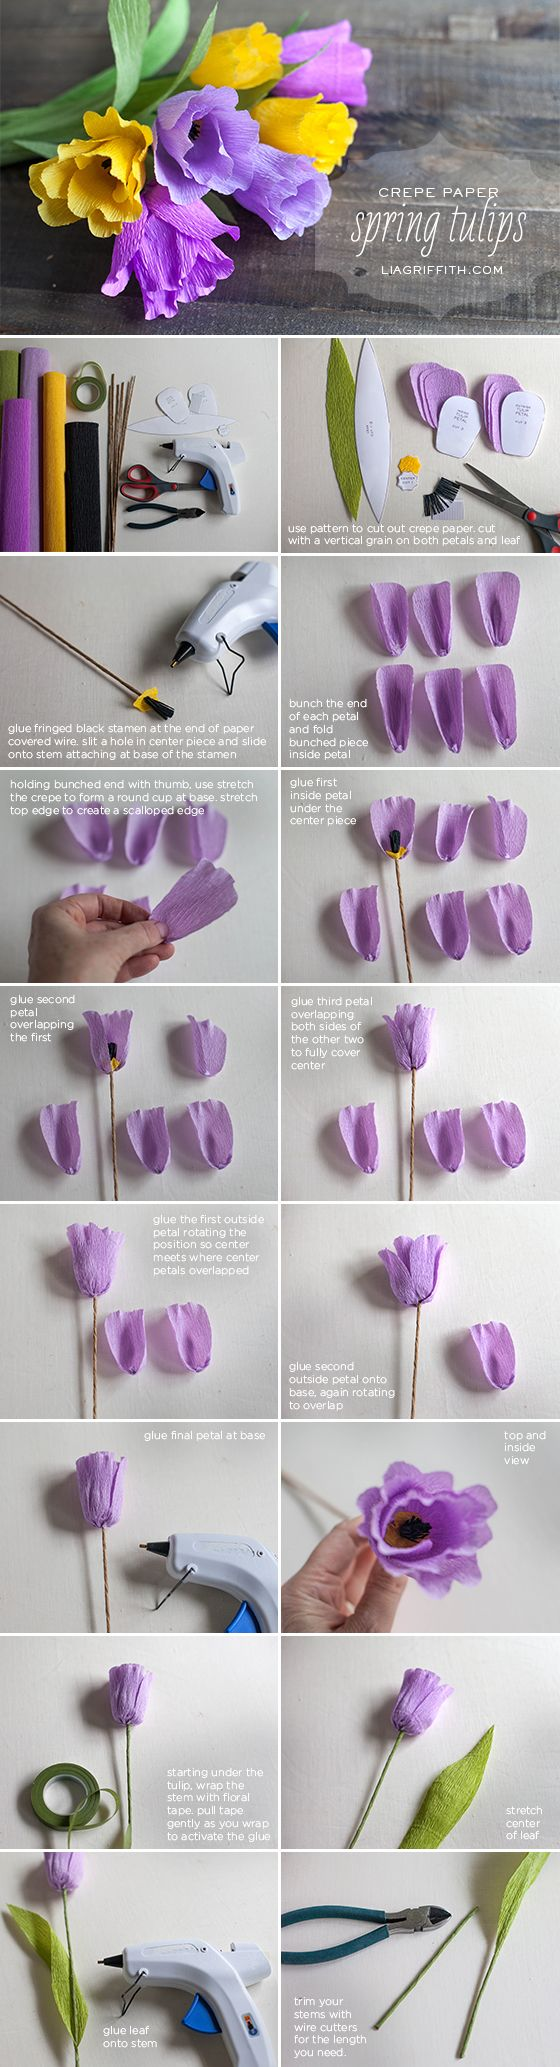 Make These Pretty Crepe Paper Tulips